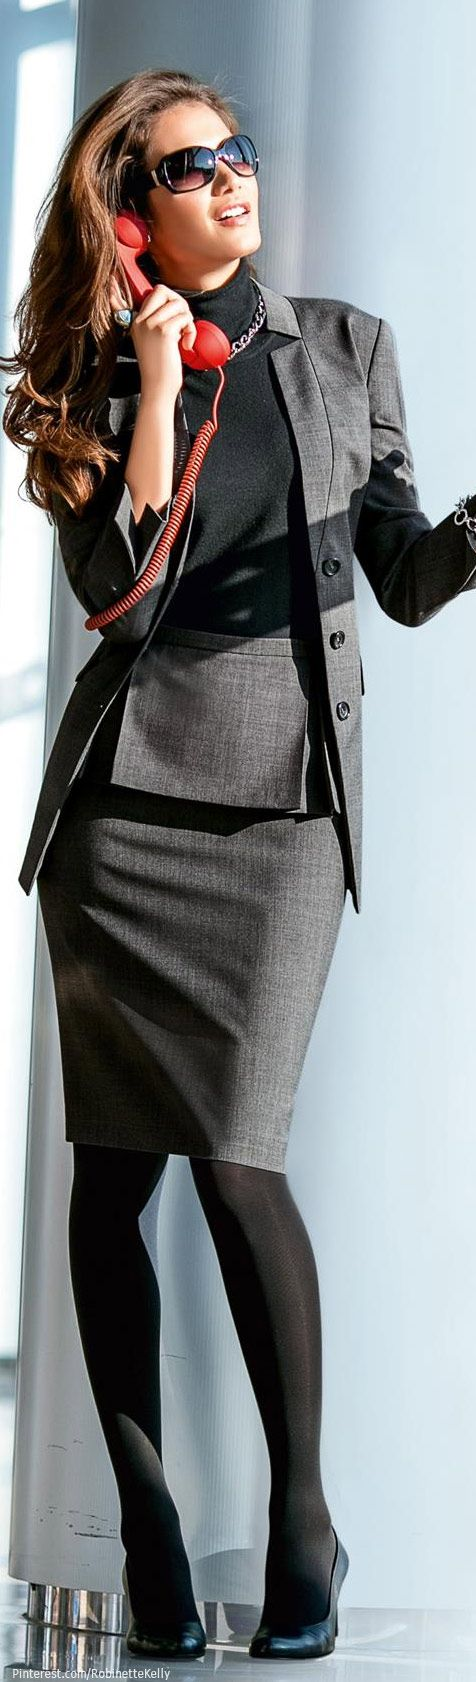 Madeleine office suit business outfits mode madeleine mode und rock - Damenmode sportlich elegant ...